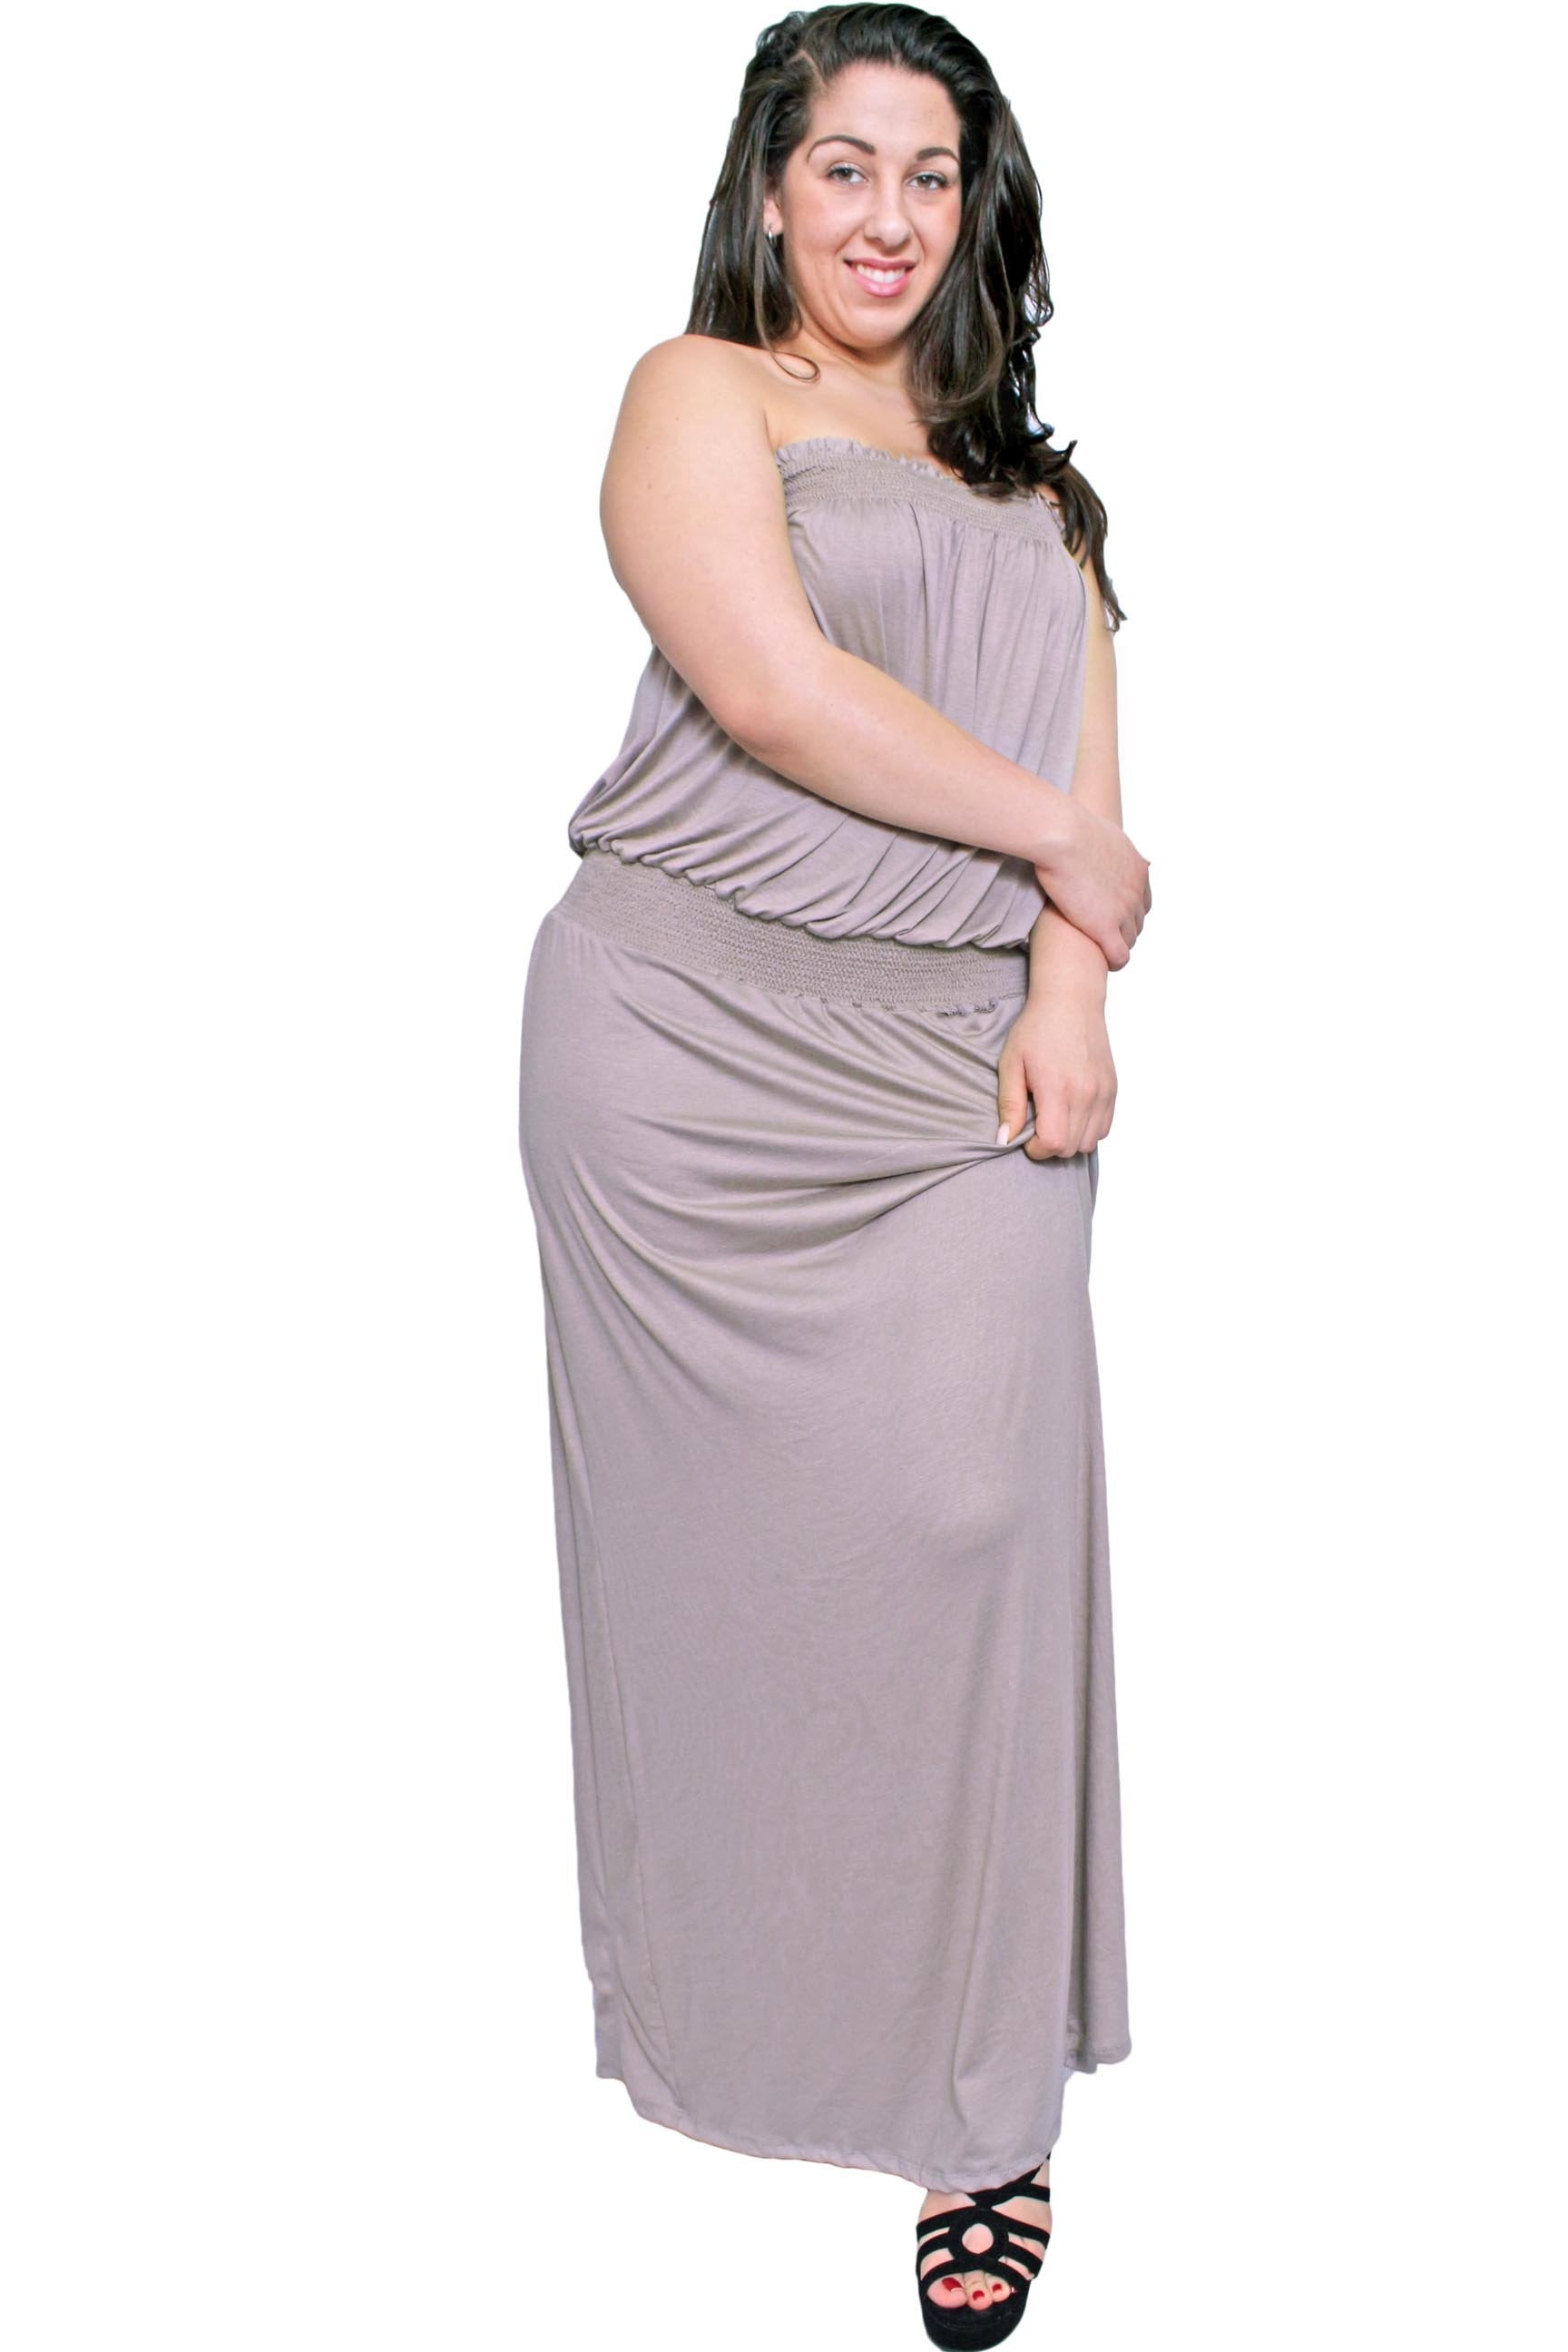 Plus Size Women's Smocked Maxi Dress